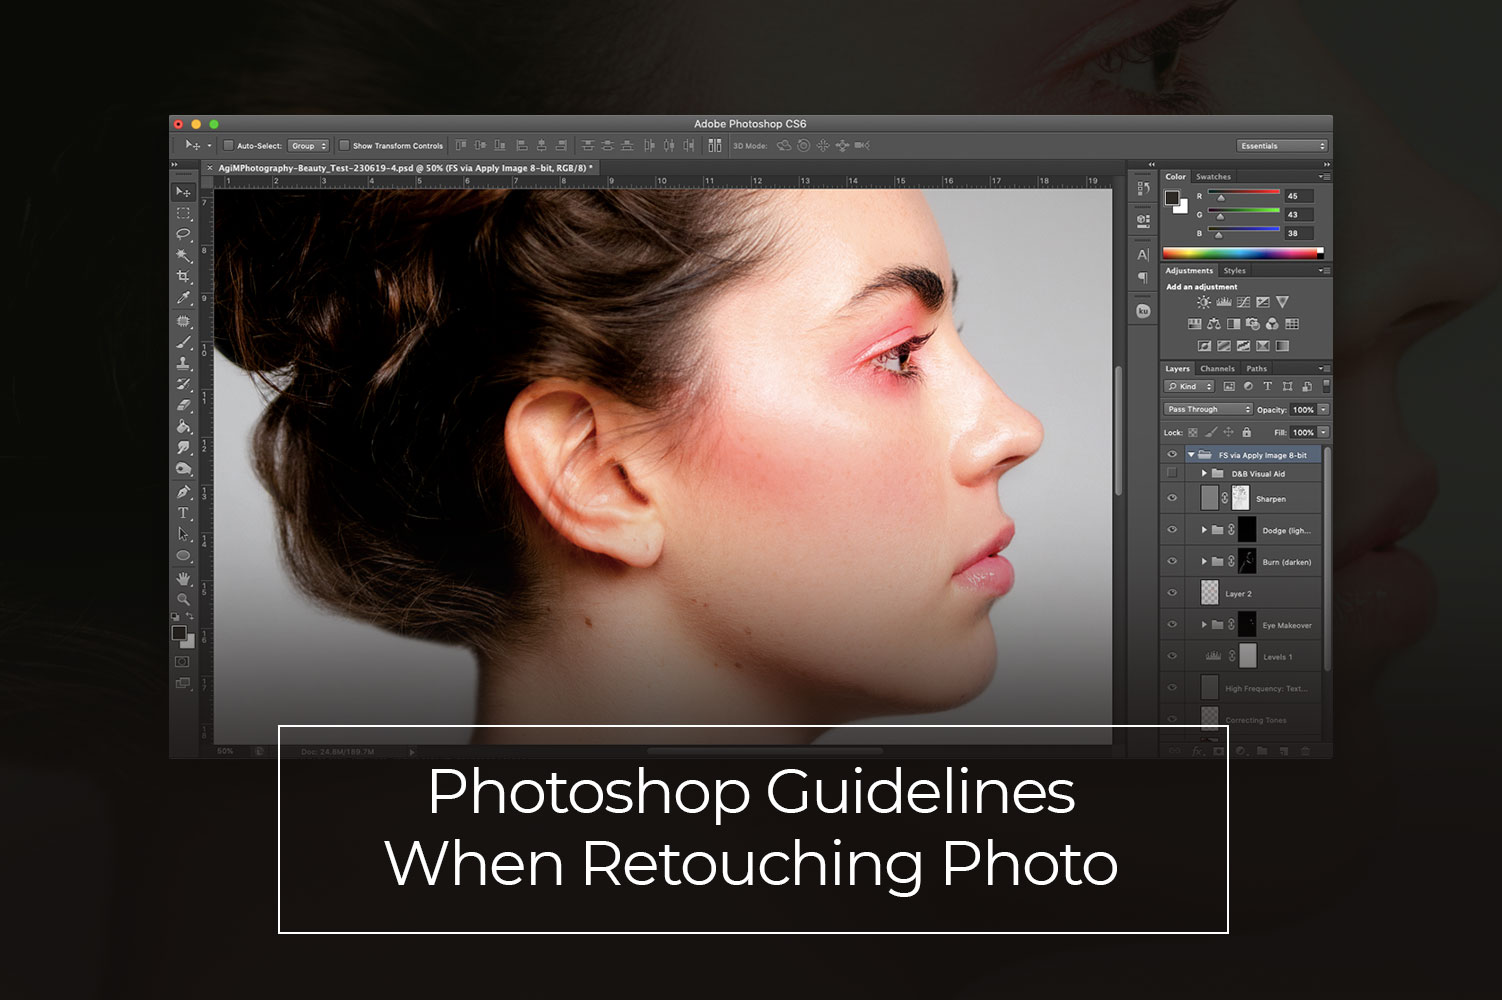 Photoshop Guidelines When Retouching Photo